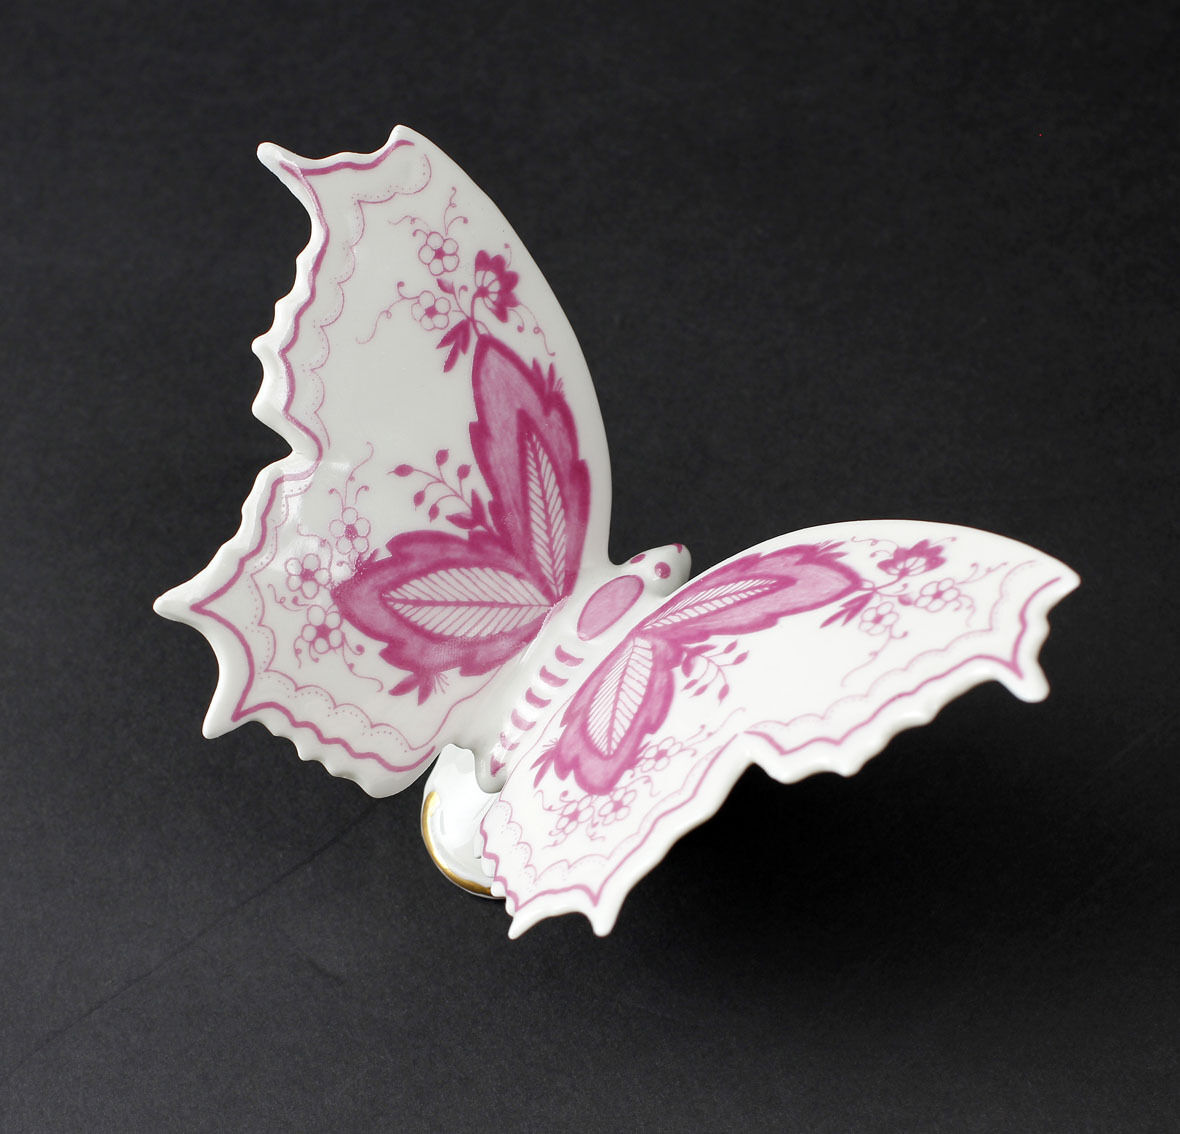 Butterfly Large Peacock´s Eye Red Kämmer-Porcelain 10X7X7CM a3-44233